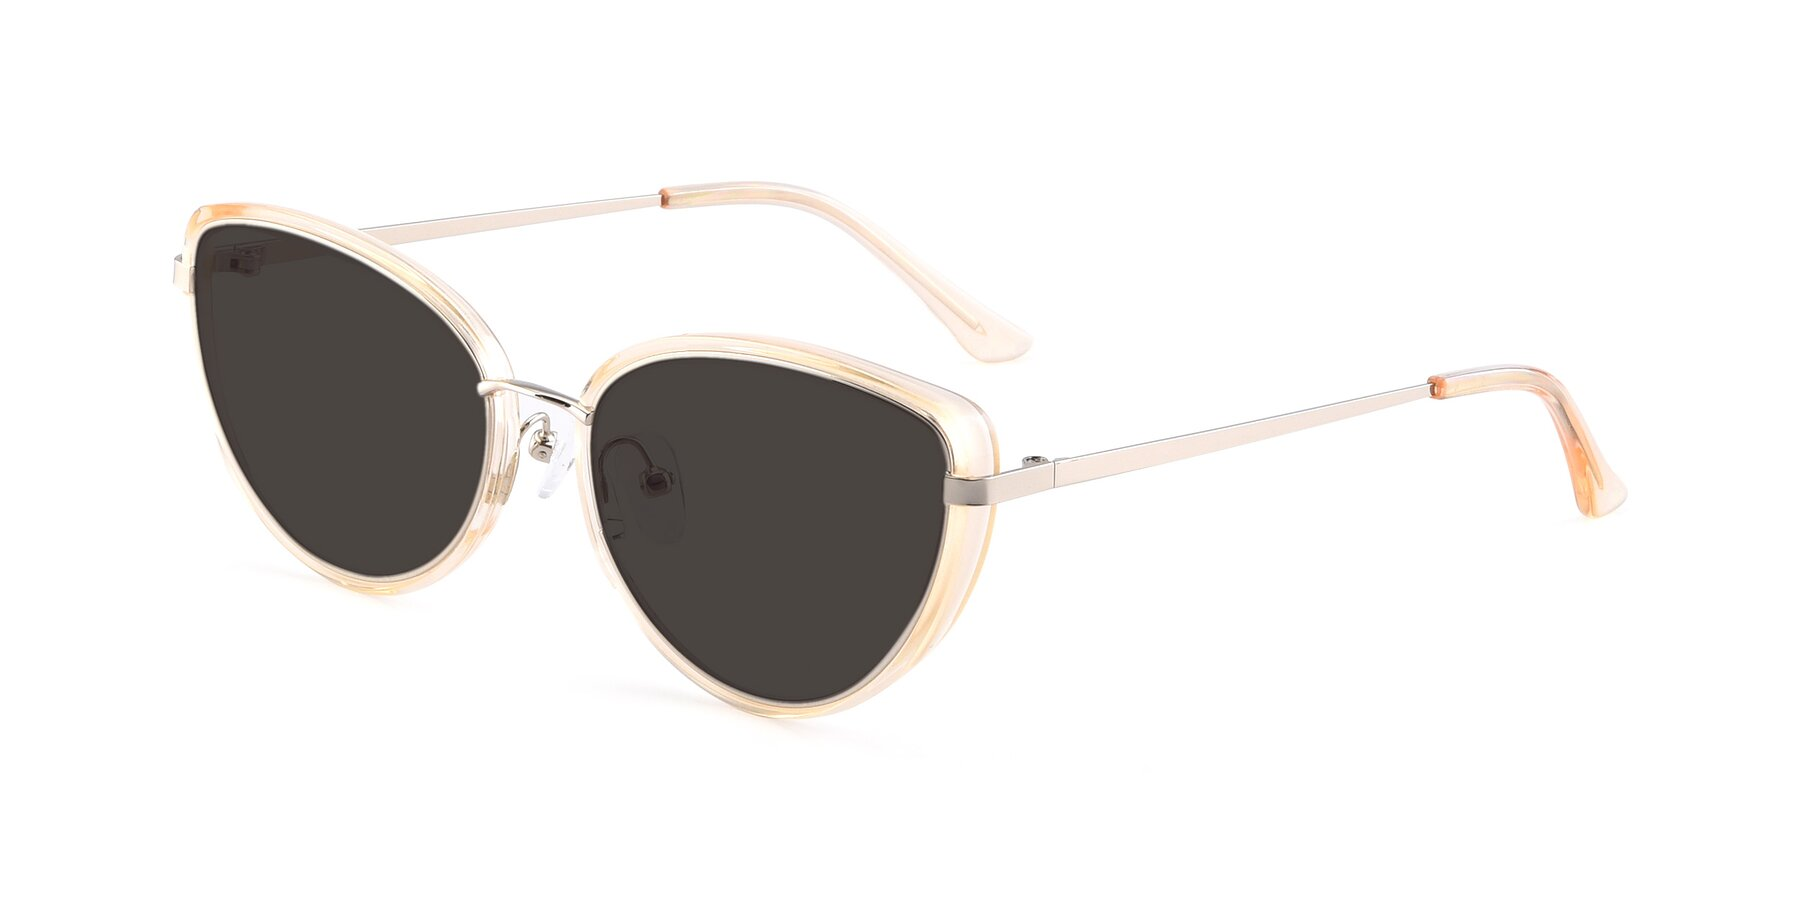 Angle of 17706 in Transparent Caramel-Silver with Gray Tinted Lenses